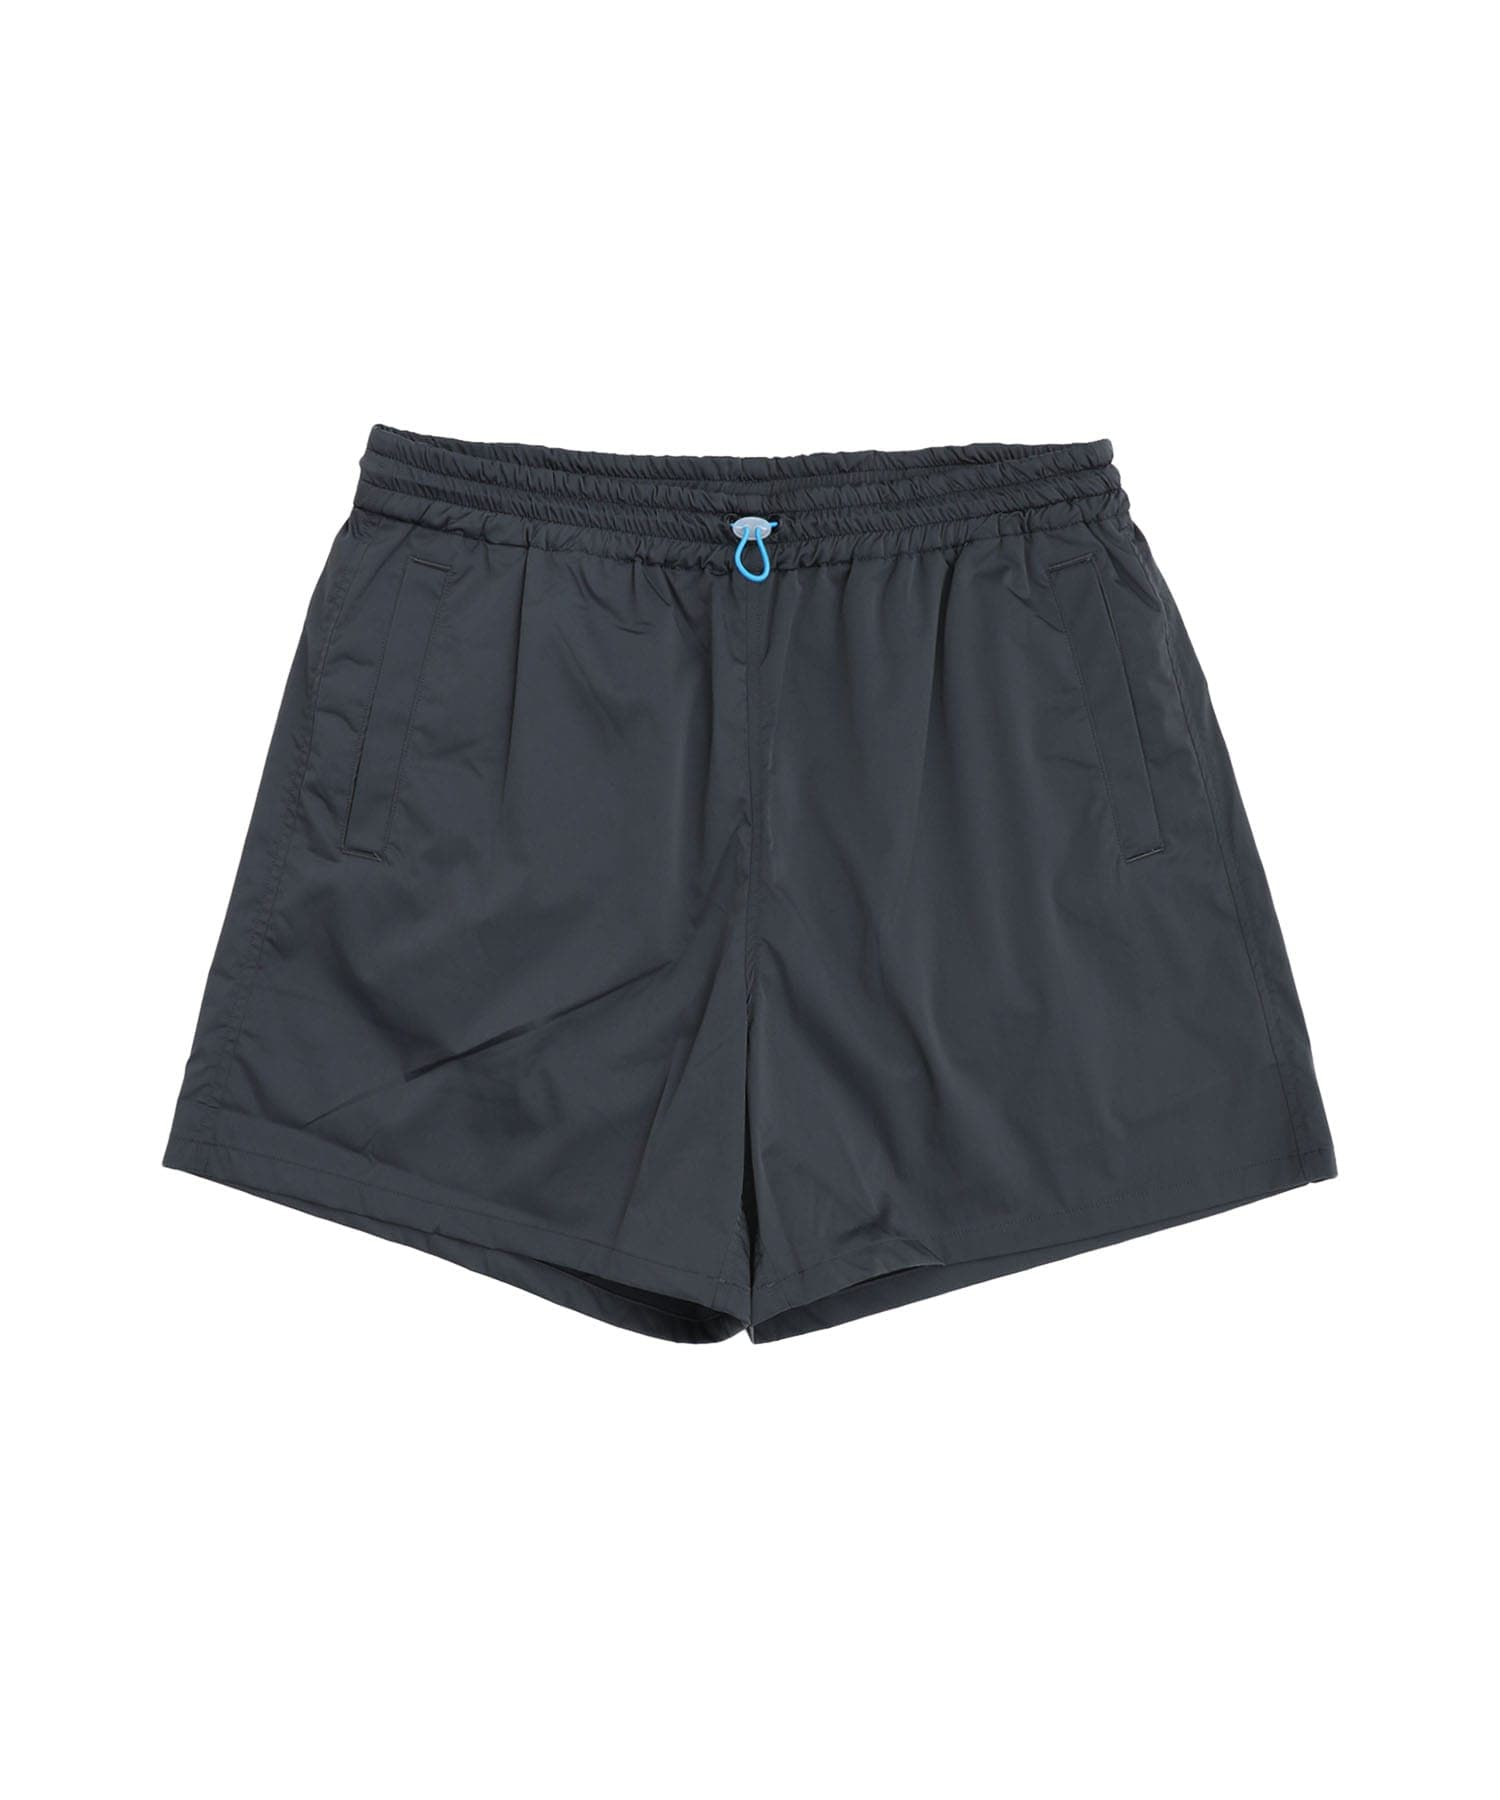 STRETCH NYLON SWIM SHORTS Name.